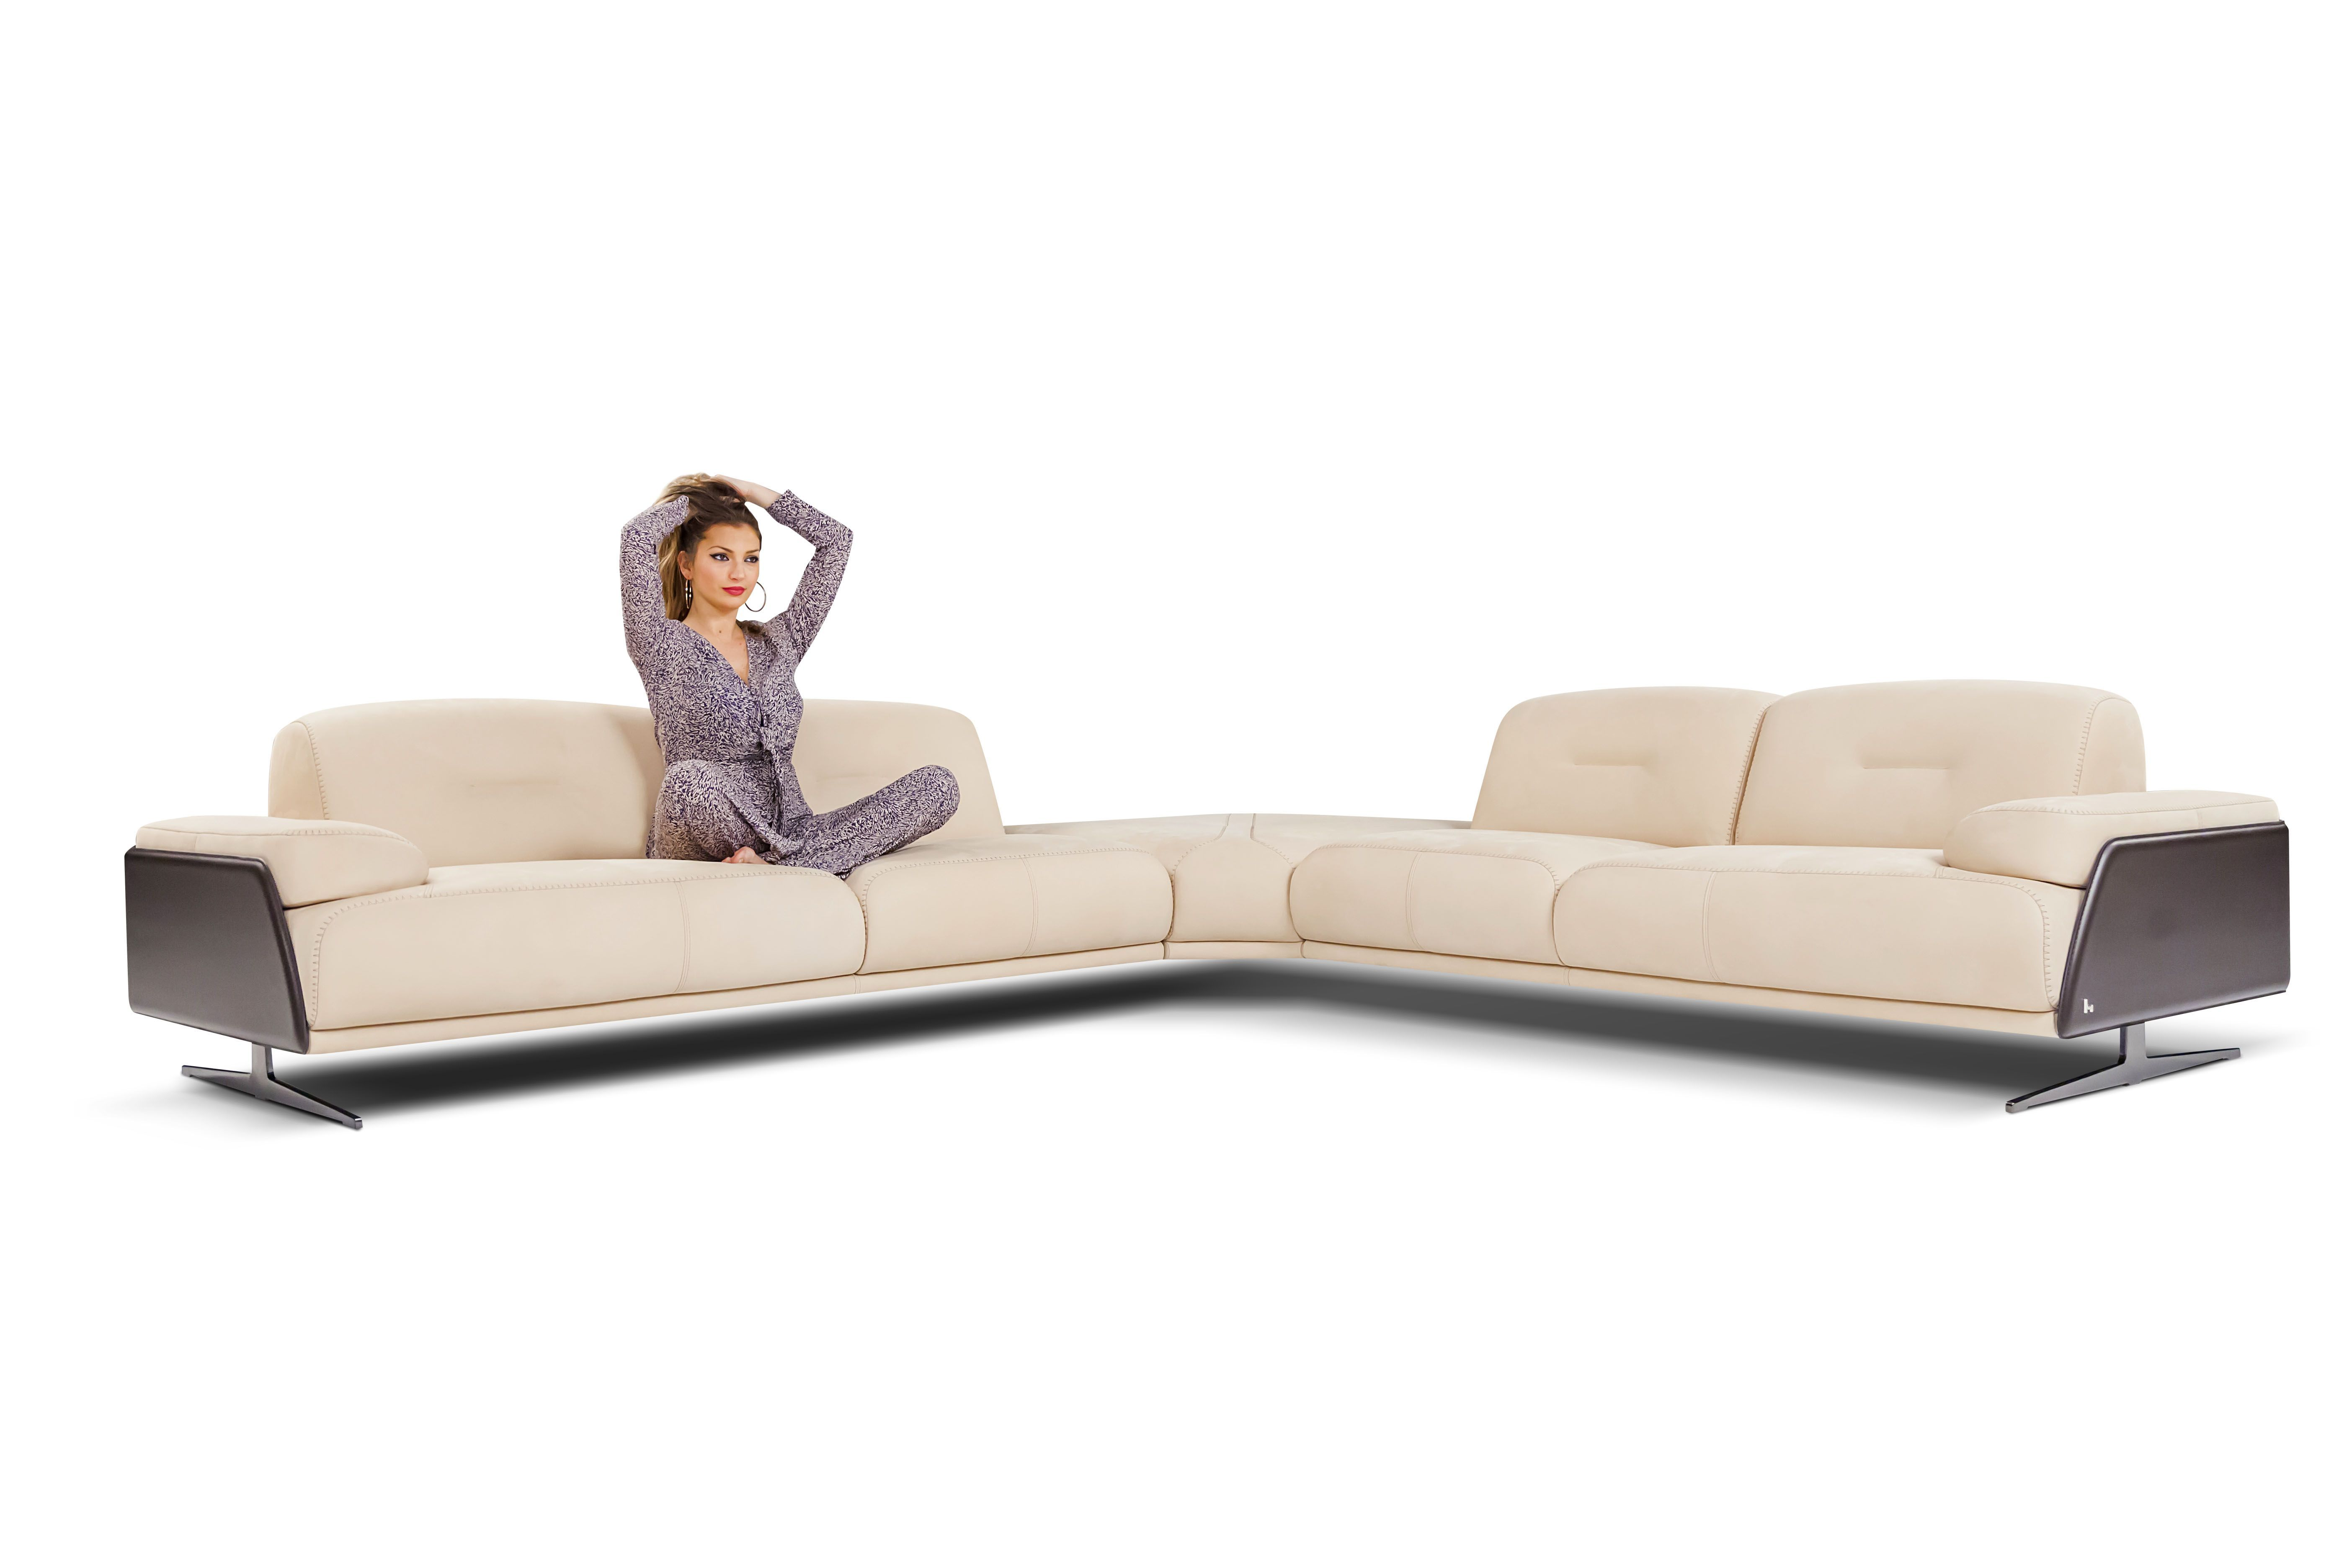 Elevate Your Interiors With Illusion Sofa A Luxury Sectional Sofa Just For Your Home Exclusively Available Sofa Design Bedroom Furniture Living Room Sofa Set